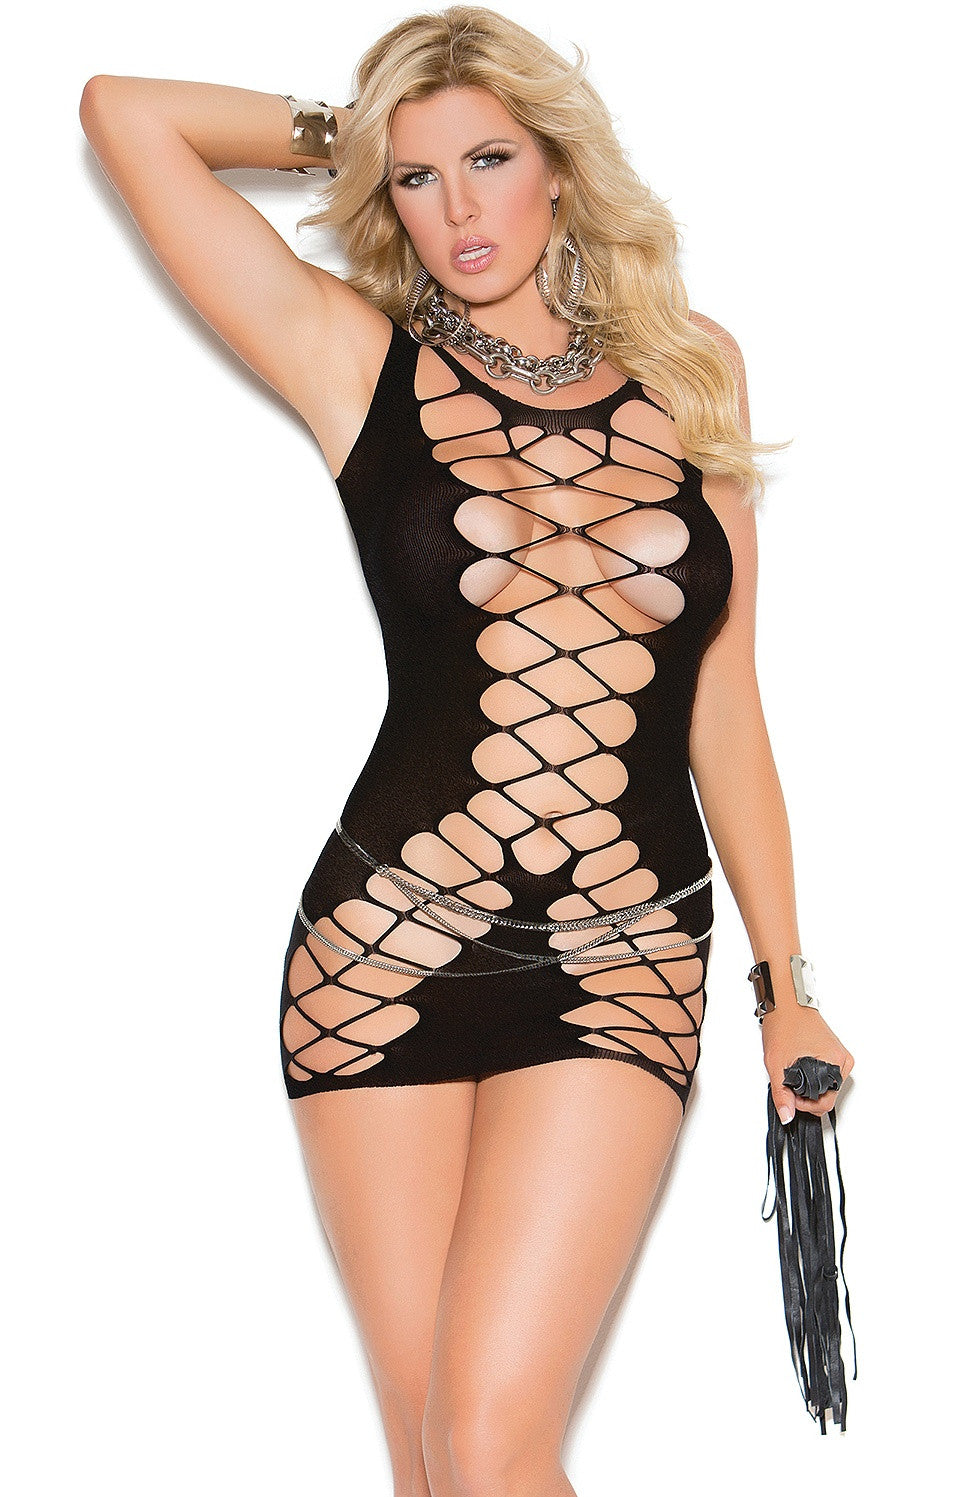 EM-81288 Sexy crochet dress - Sexylingerieland